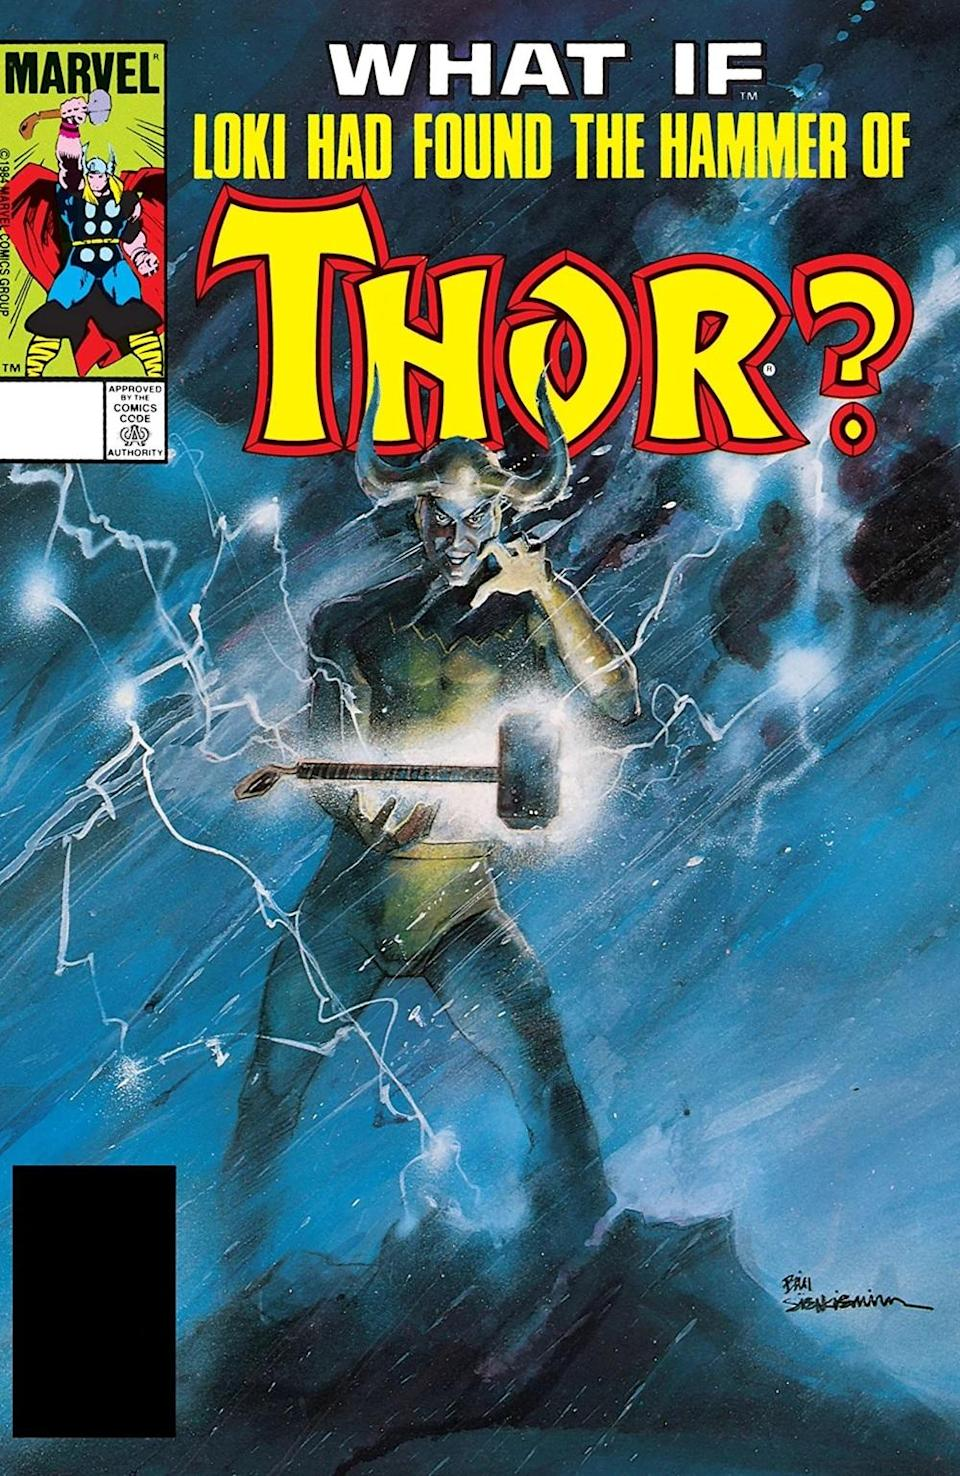 """The cover of What If? #47 asks """"What if Loki Had Found the Hammer of Thor?"""" and depicts Loki, in full God of Mischief garb, with a glowing Mjolnir floating in front of him. Loki has a devilish grin on his face while wind and lightning swirls behind him."""